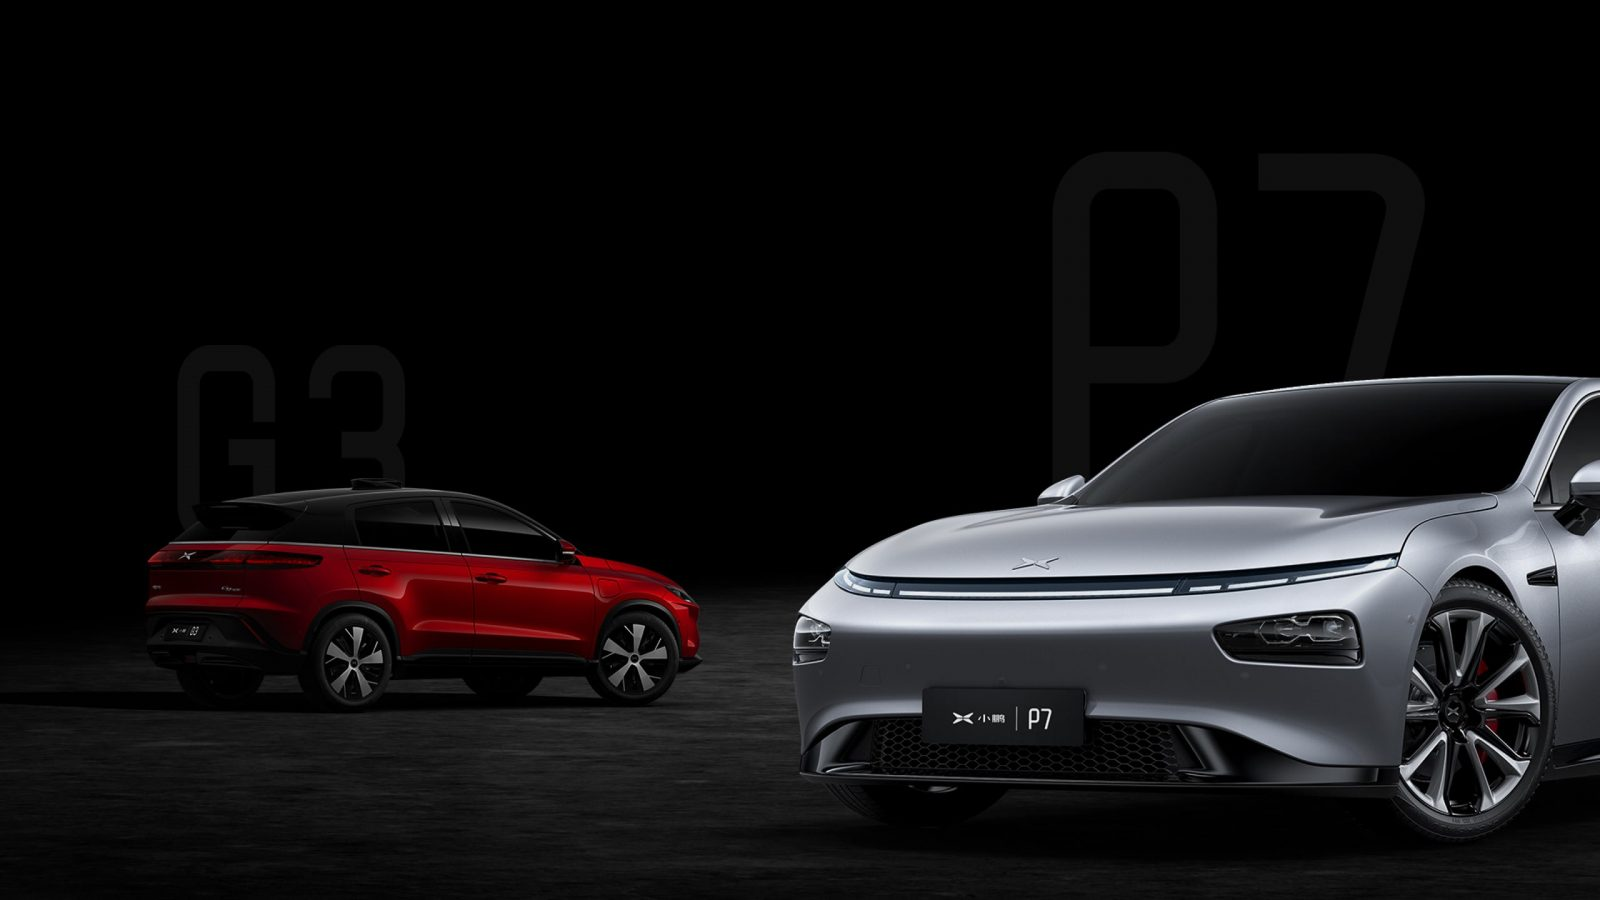 Chinese Tesla rival Xpeng raises $400 million from investors such as Xiaomi